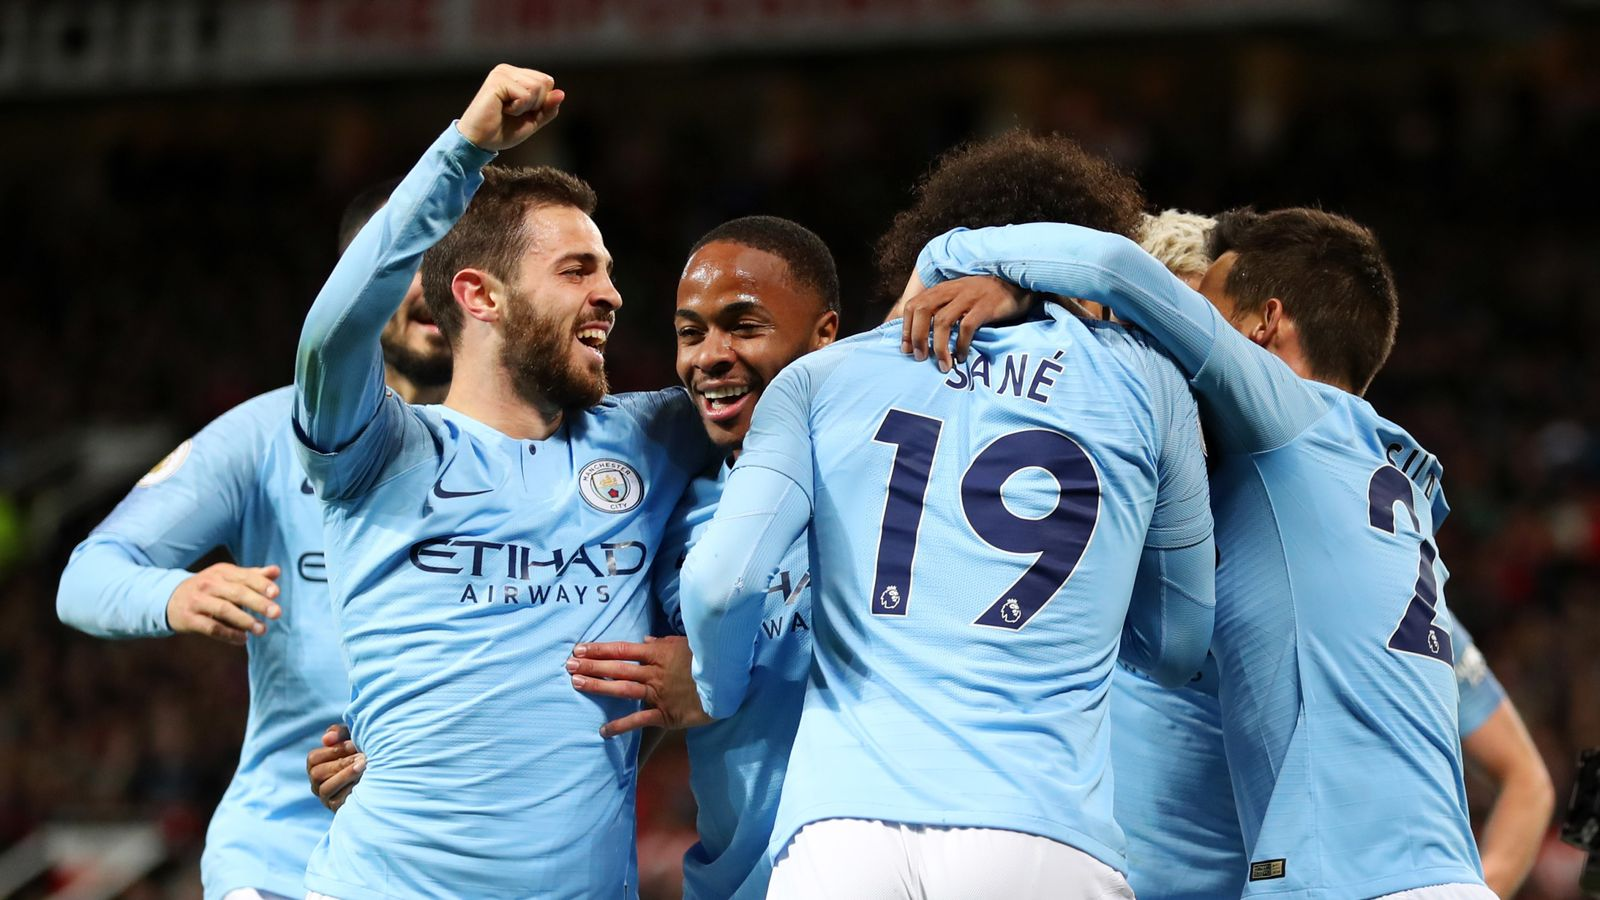 Man Utd 0 - 2 Man City - Match Report & Highlights